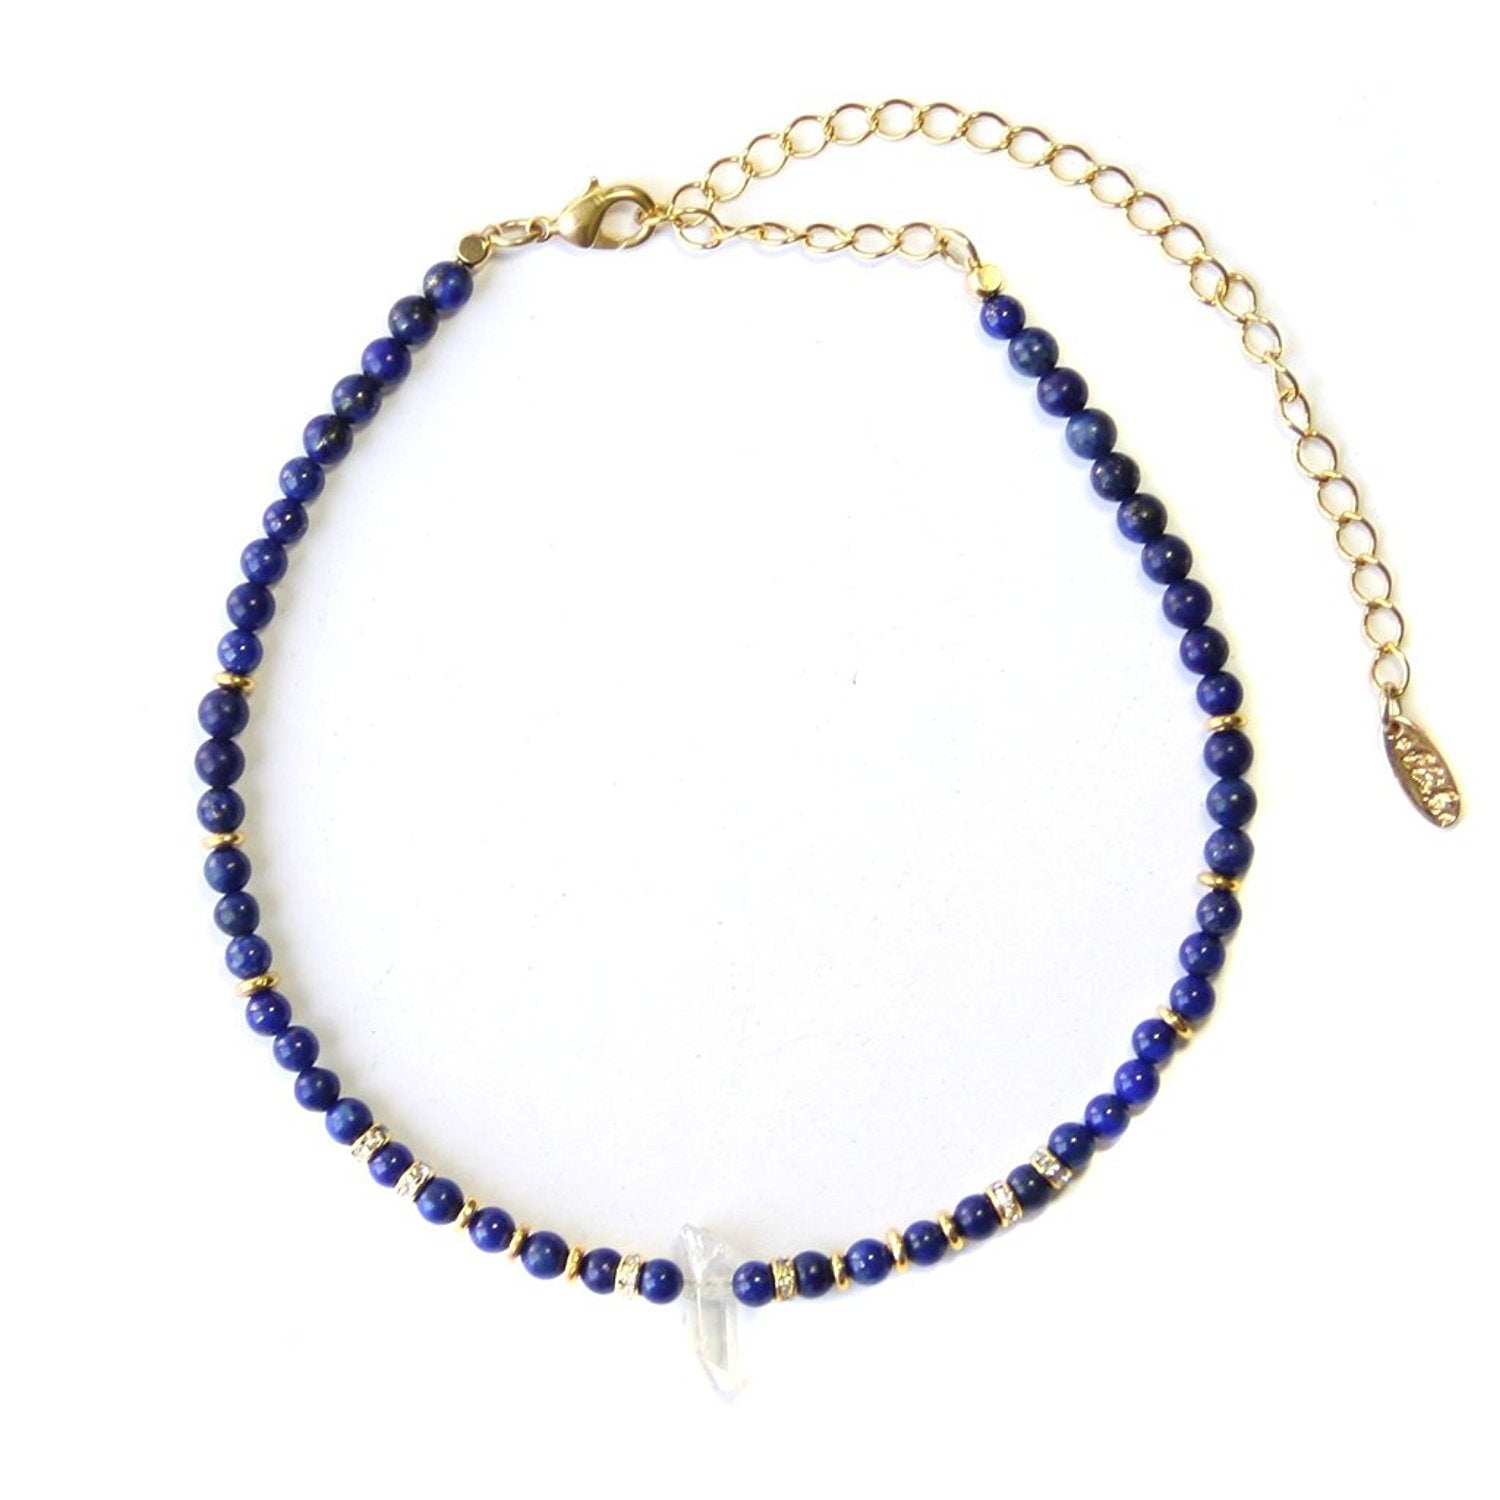 Ettika Crystal Arts Blue And Gold Tone With Pave Crystal Choker Necklace